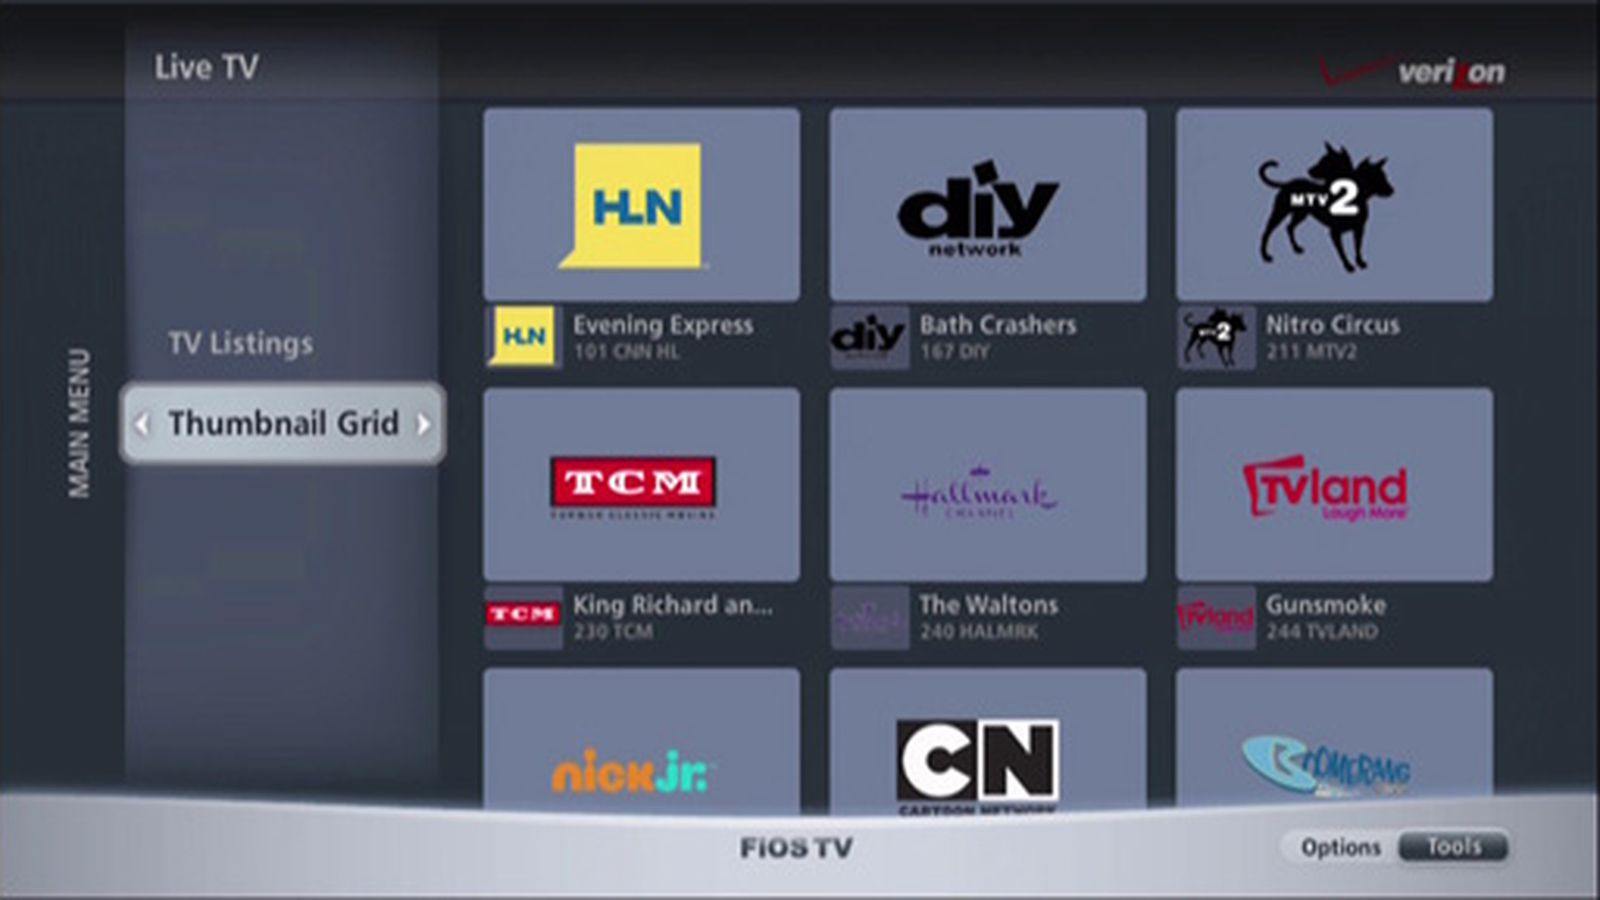 FiOS TV app for Samsung devices launches: stream 26 live ...